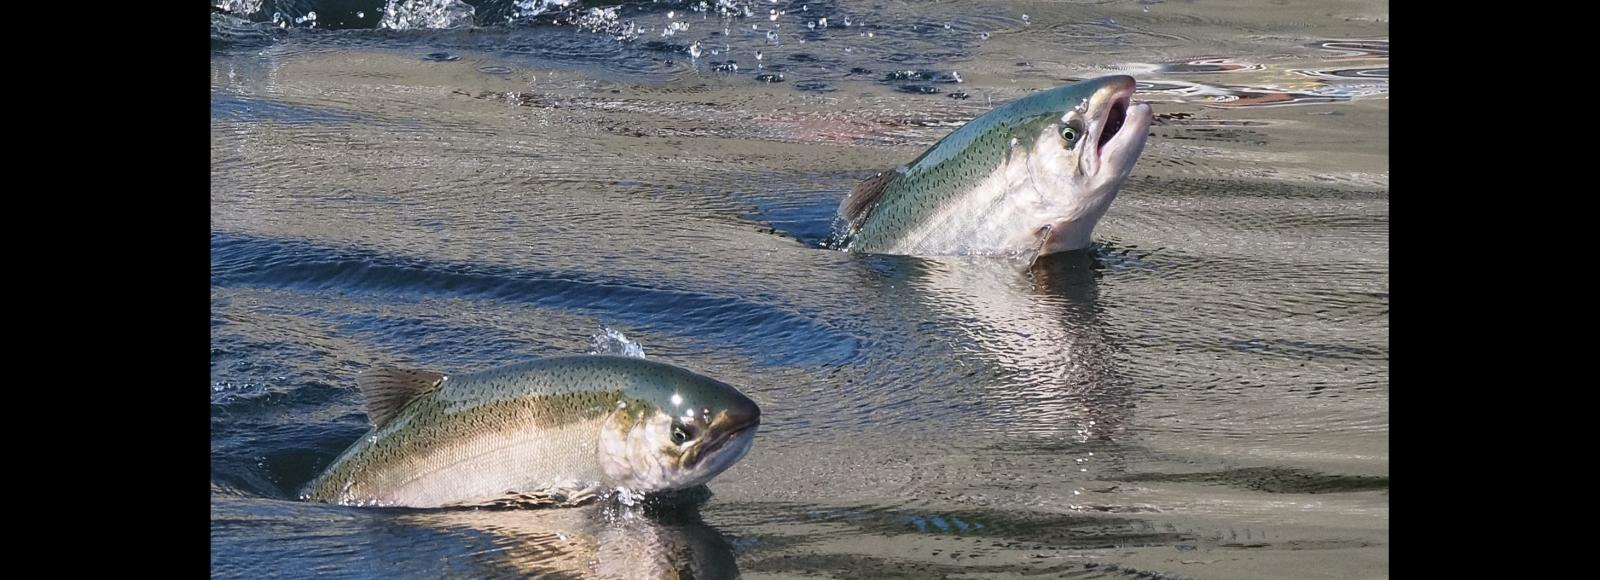 Two Chinook salmon mid-leap out of flowing water